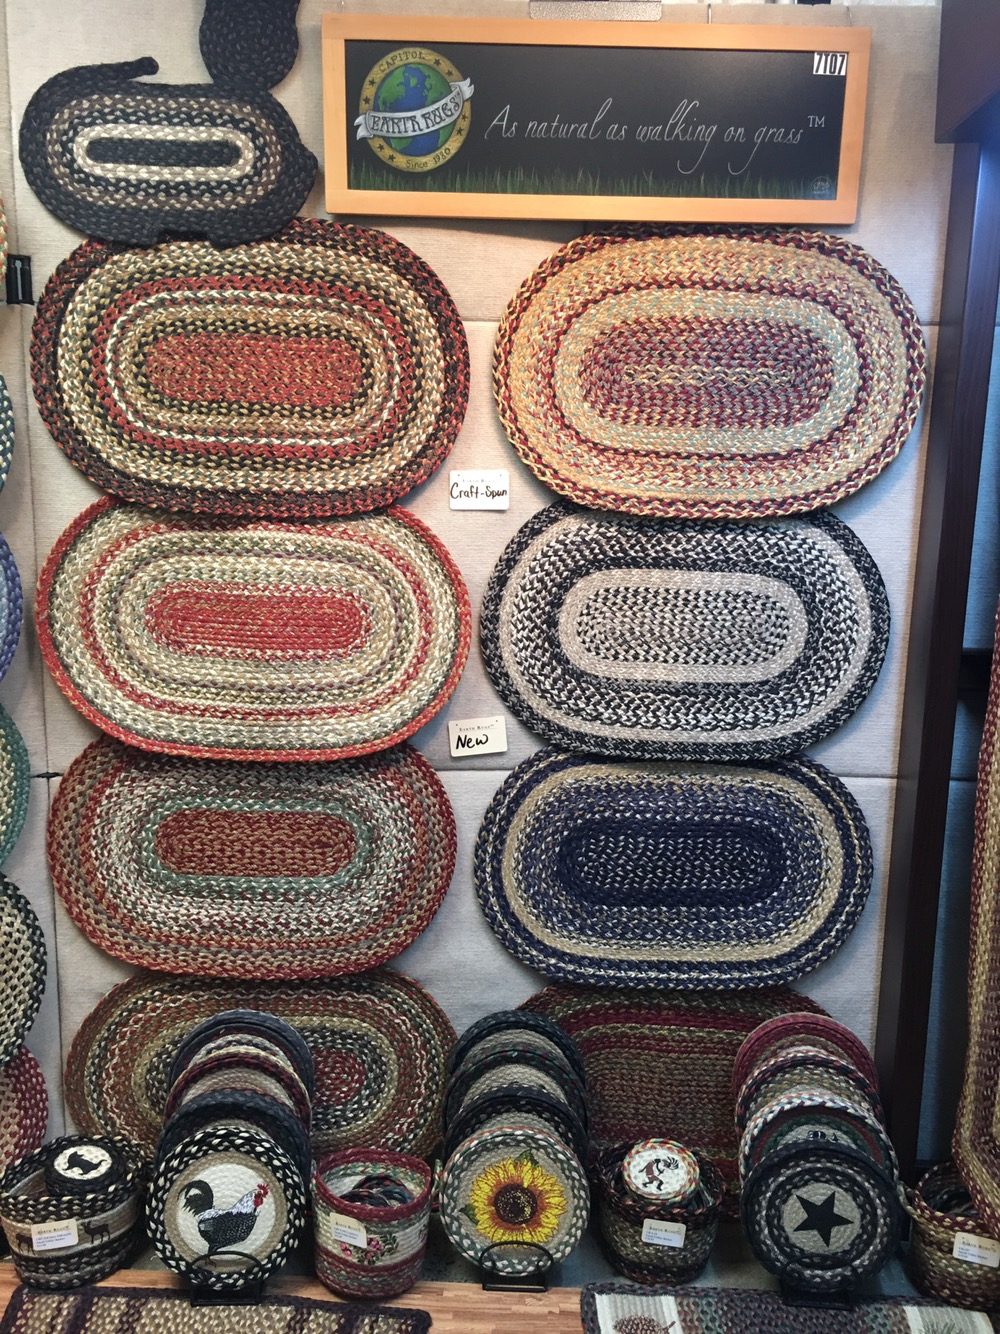 Earth Rugs NEW Craft Spun Rugs At AmericasMart